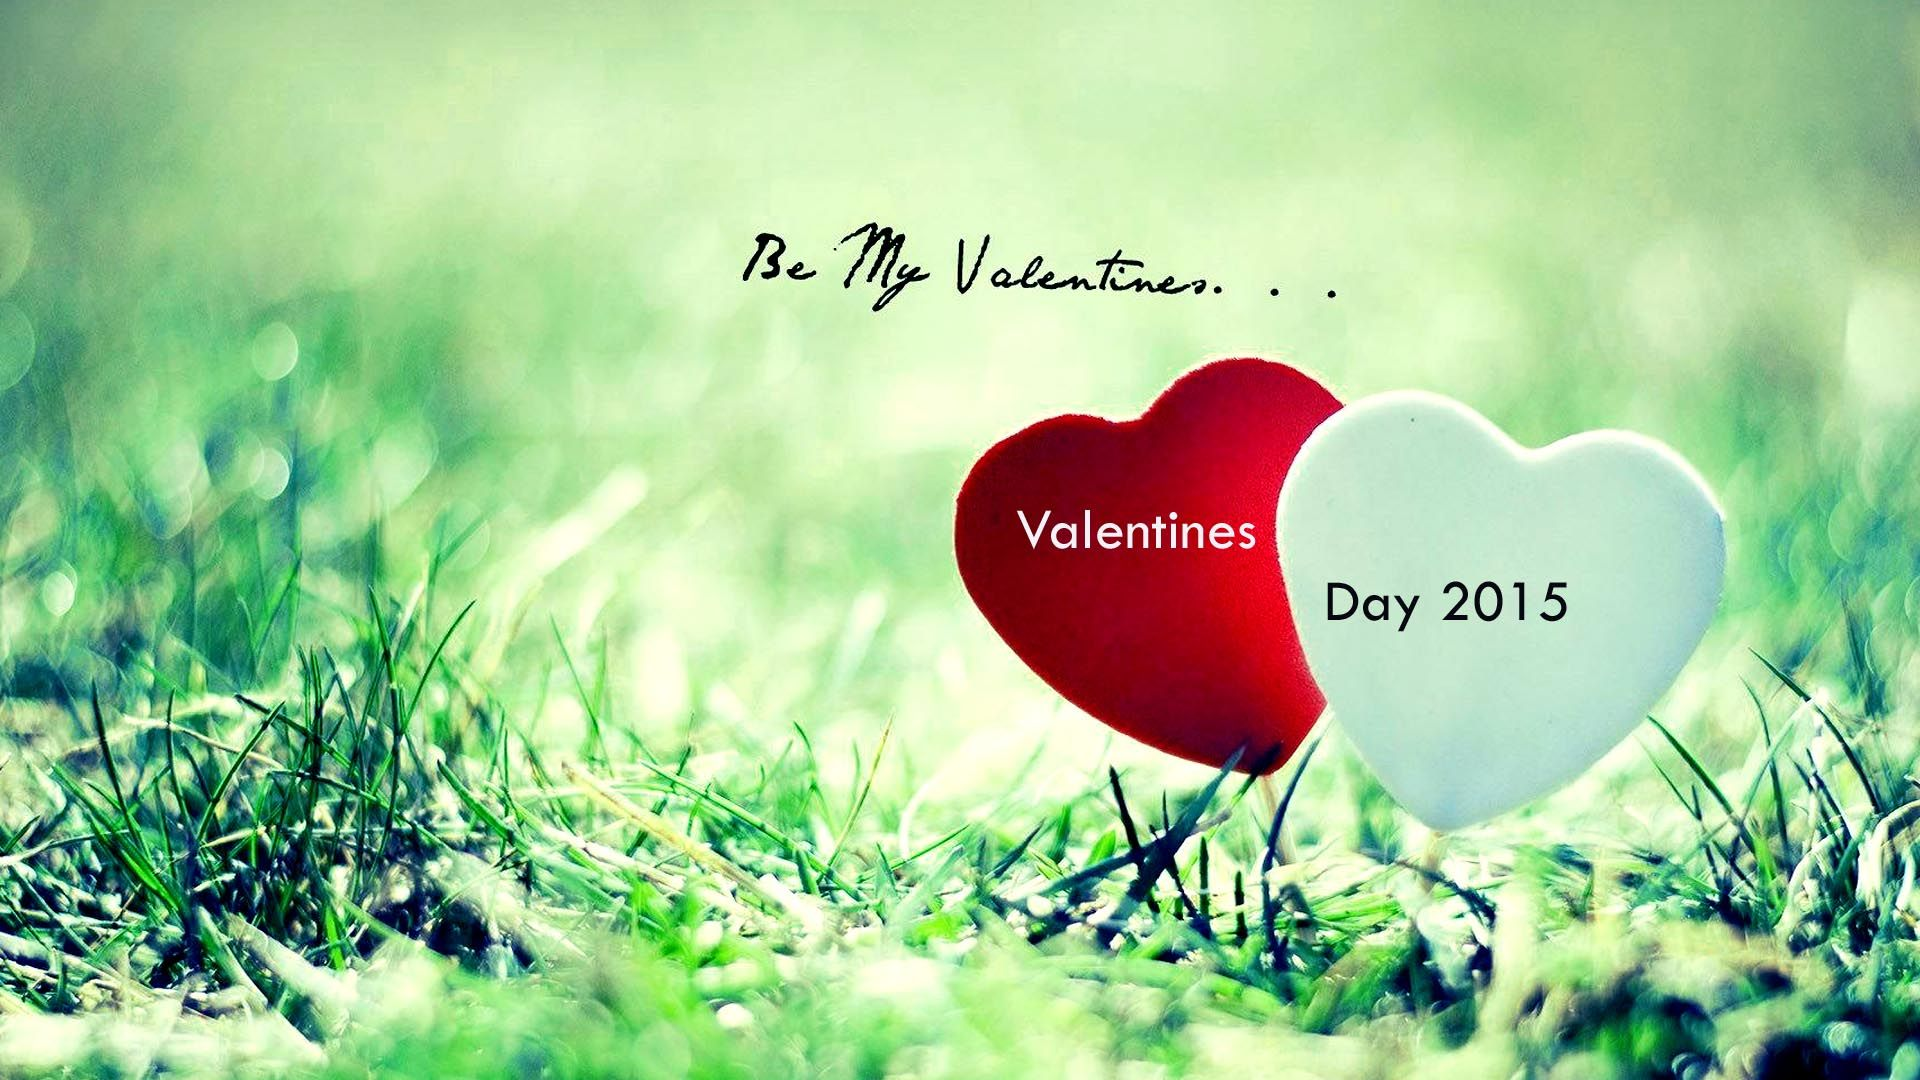 Valentine day greetings msg wallpapers sms images wishes valentine day greetings msg wallpapers sms images wishes kristyandbryce Image collections